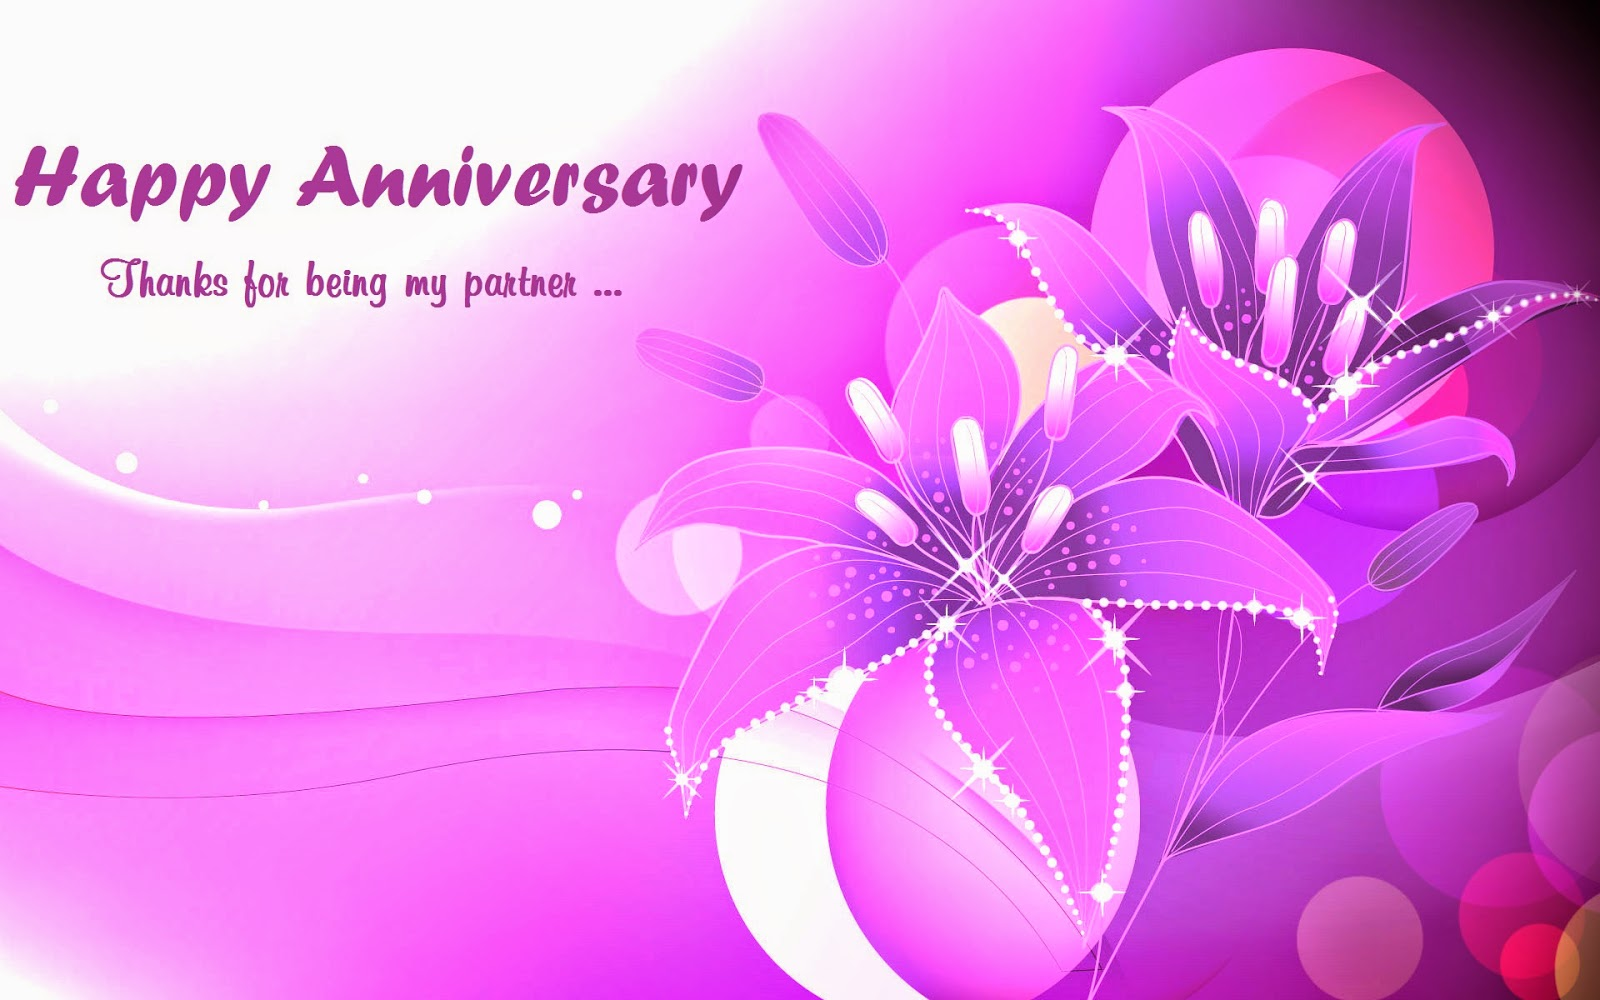 Anniversary wishes ecards images page 82 wedding anniversary greeting card m4hsunfo Images